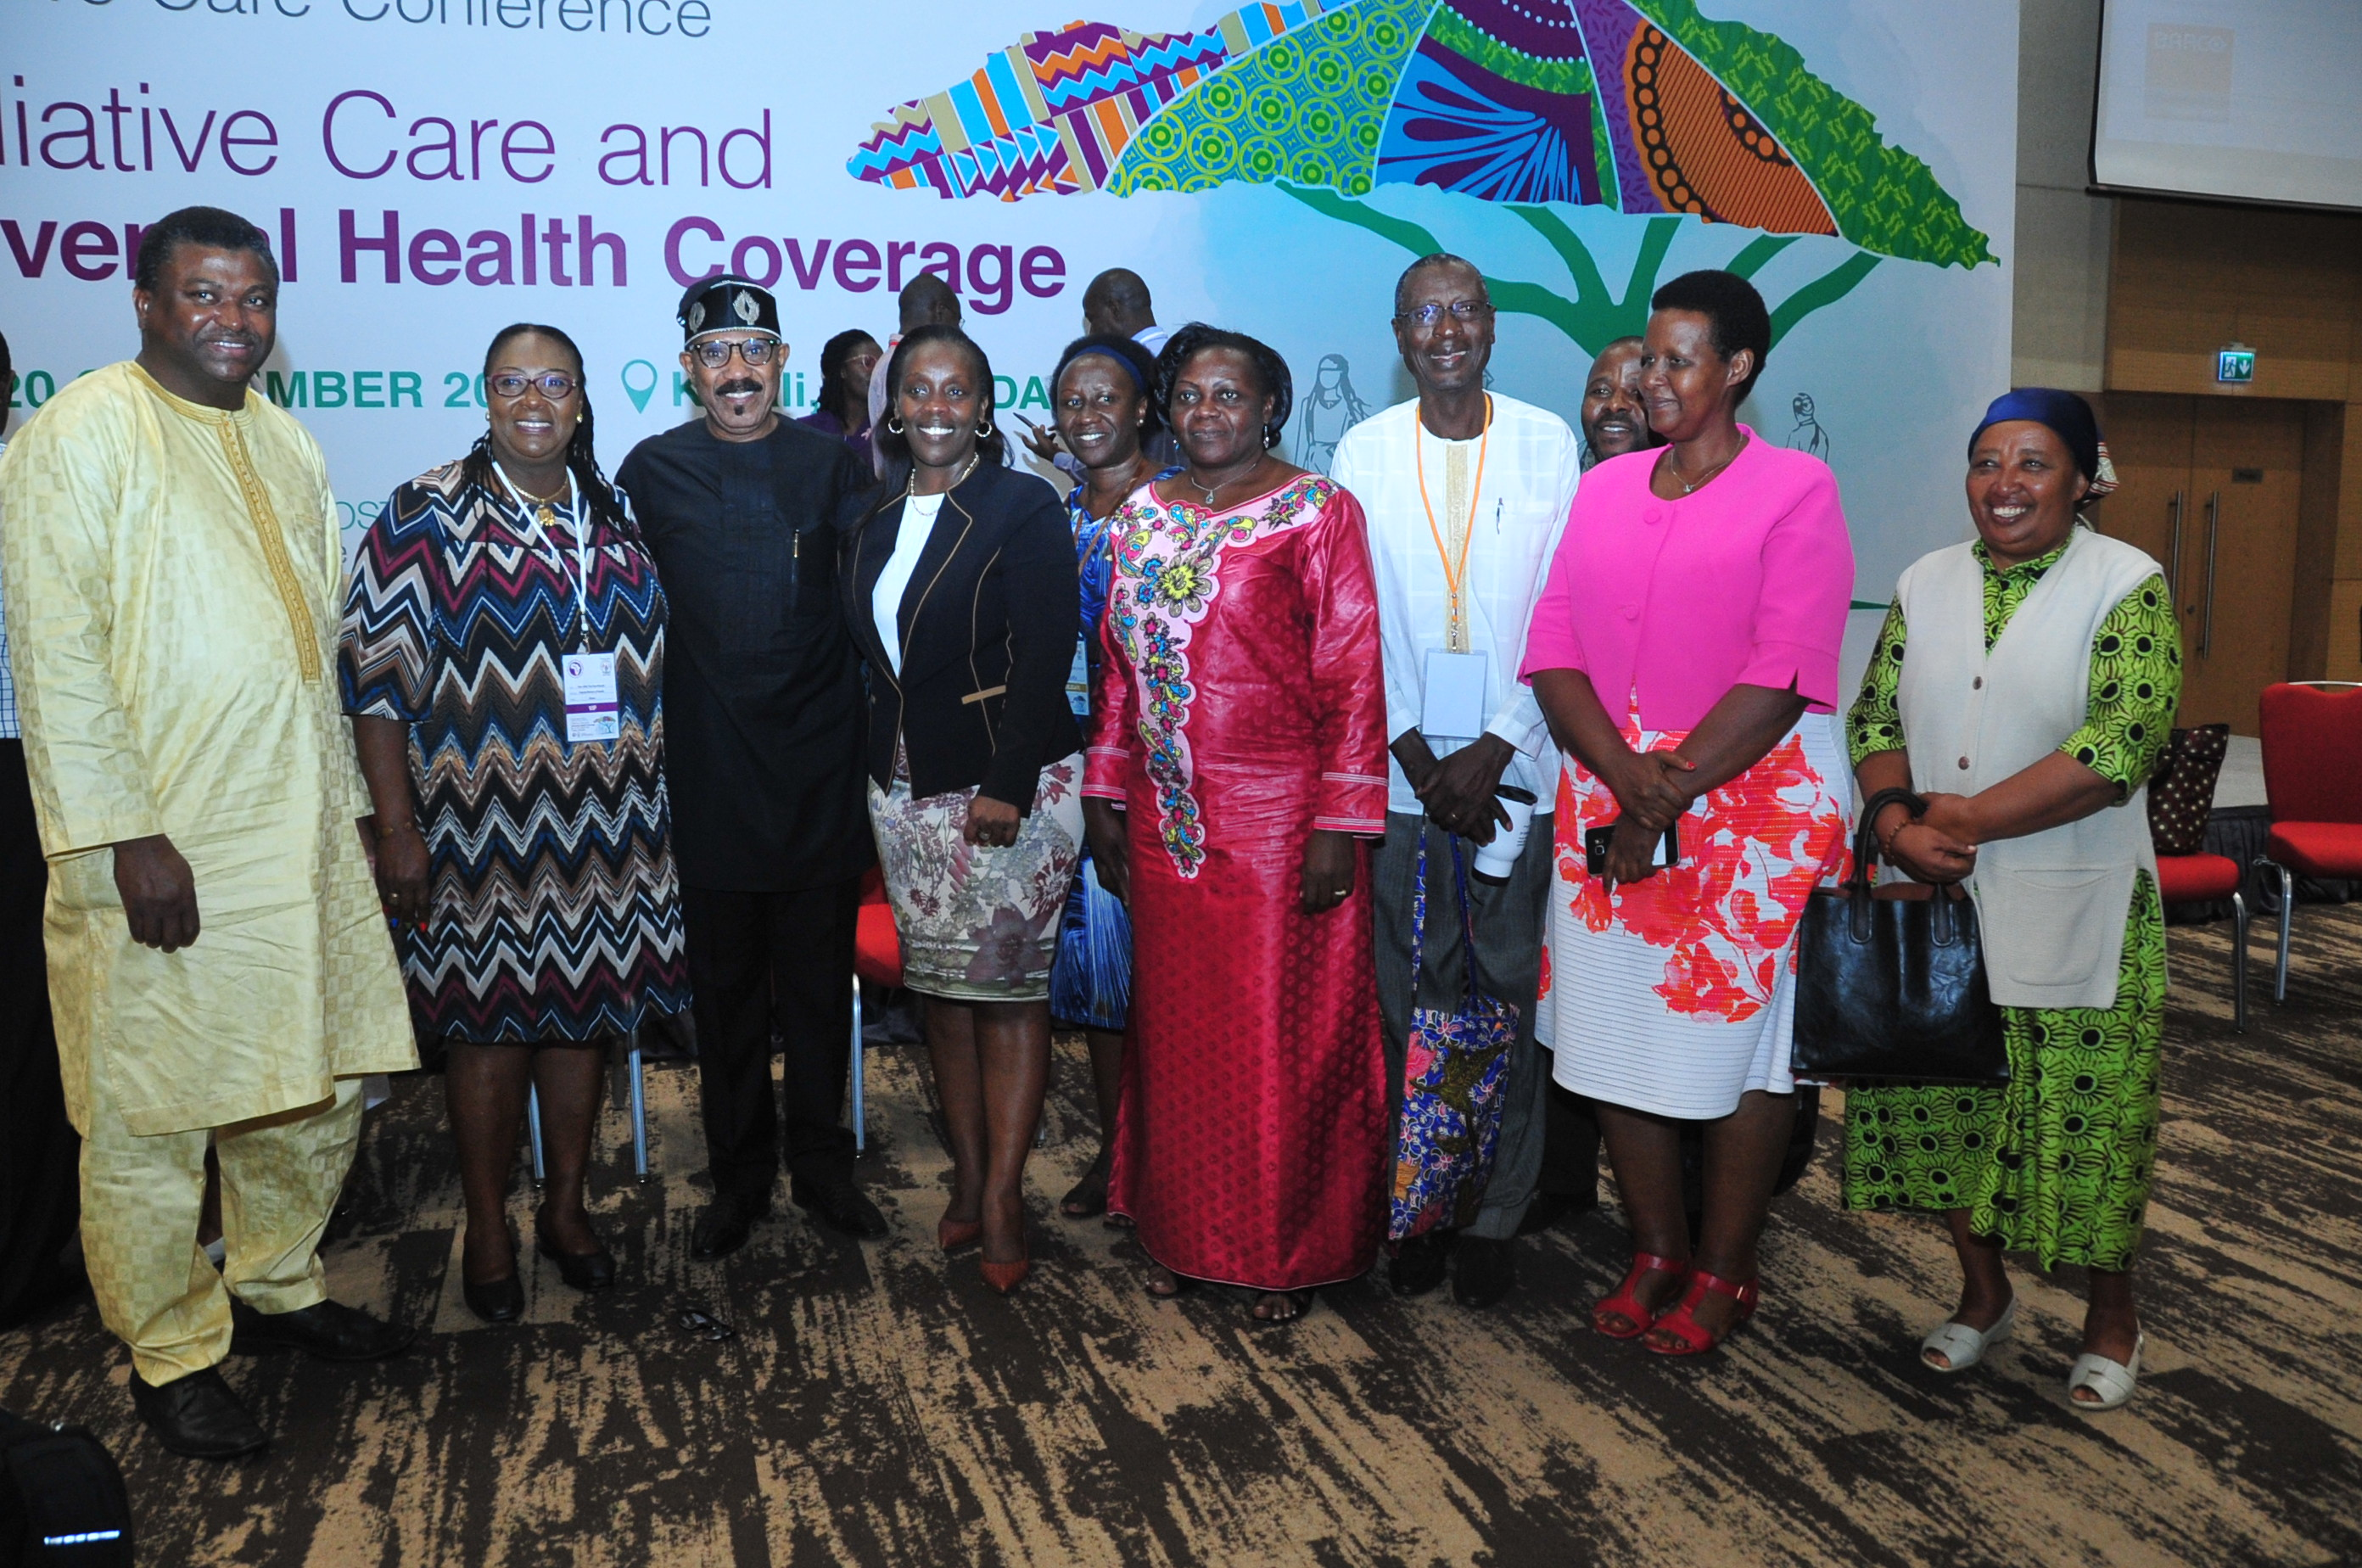 African health ministers call for palliative care